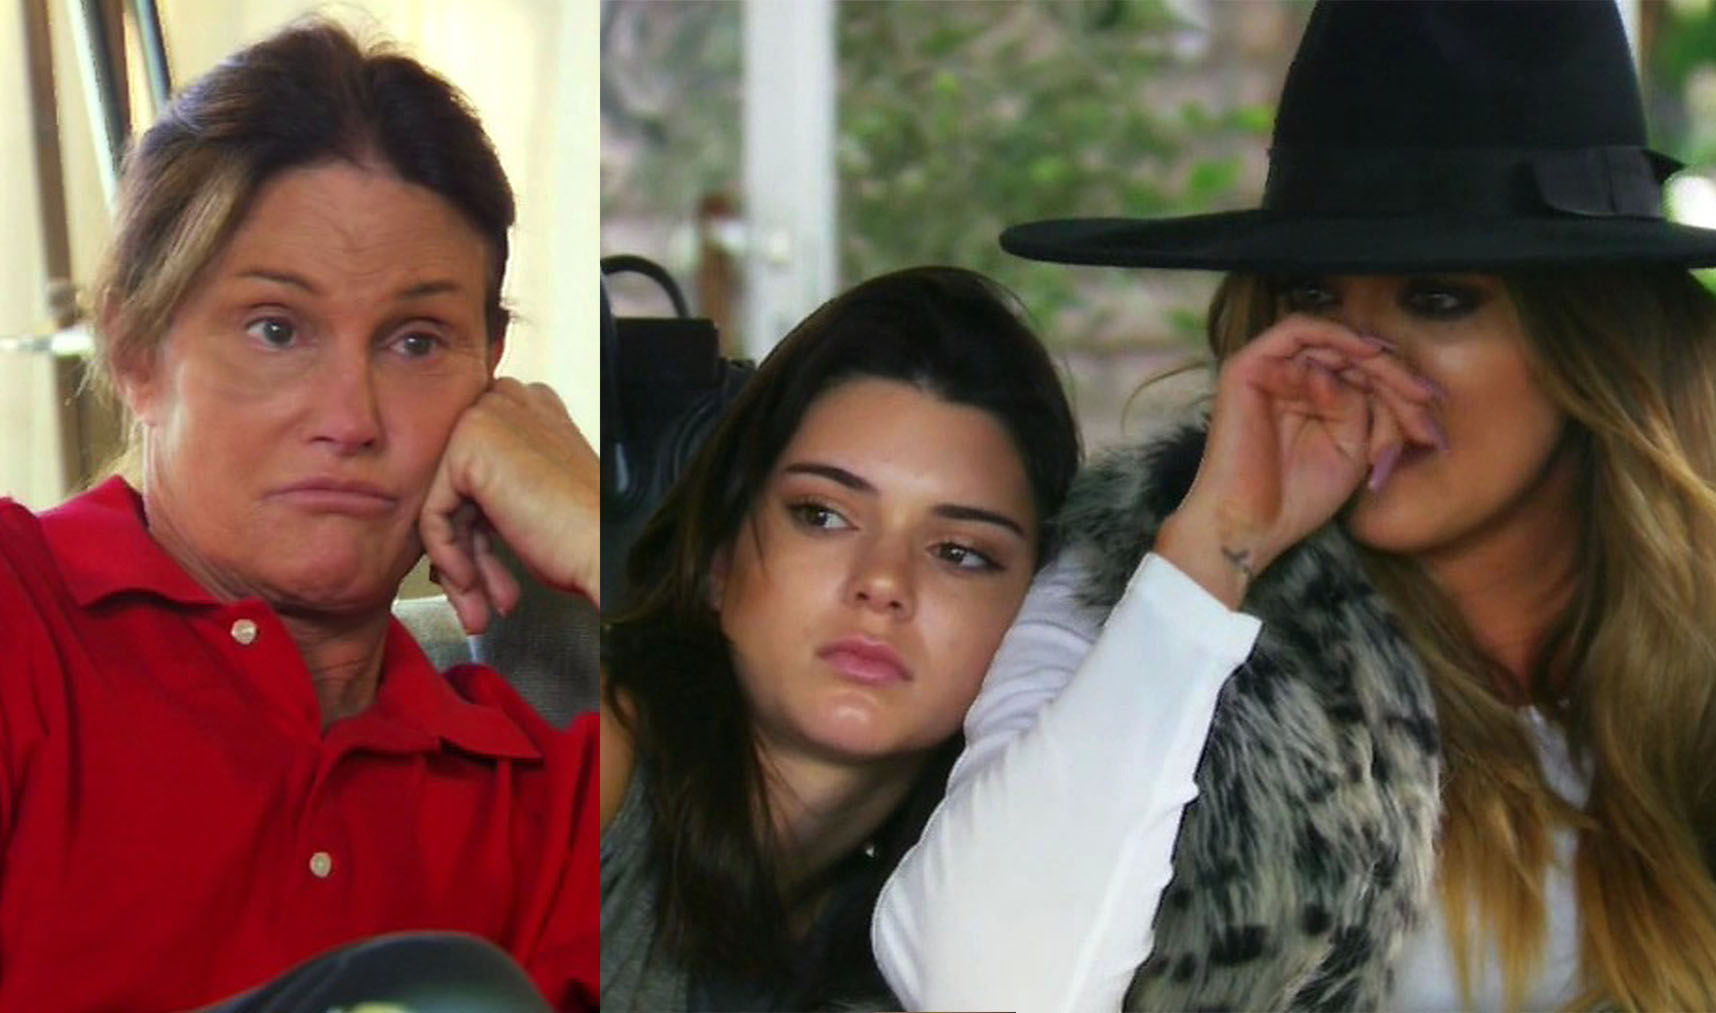 """17 May 2015 - Los Angeles - USA  **** STRICTLY NOT AVAILABLE FOR USA ***  The Kardashian clan all break down in tears as they talk to Brune Jenner about his gender transition as he reveals he's already had a nose job on Keeping Up With The Kardashians special. The first episode of the two-part KUWTK special About Bruce, Bruce Jenner revealed that the episodes capture a moment in his life several months ago and how hard it was for his family to take in the news he was transitioning to live as a woman. """"We knew Bruce was a cross-dresser but we were never told he was going to fully transition and become a woman,"""" said Khloe Kardashian. And it was Khloe, sitting alongside a tearful Kendall Jenner, who took Bruce to task about not being fully honest with his kids about what exactly he was intending to do. Bruce he'd told each of his children about his gender struggles and thought they understood. Pressed by Khloe, he told the two siblings that in five to six months, 'Bruce' will be gone and his new female identity will replace him. Then he revealed he had already had a nose job and still has some other 'facial' work to be done before he will move on to the full gender transition surgery. Khloe tried to explain to her step-dad that for his daughters, his decision to transition meant they were losing a father and that a female person was replacing him. The clues were there though, as the girls revealed: """"We'd find makeup, like lipstick, and we'd think he was having an affair and we didn't want our family broken up so we didn't tell anyone."""" It was clear that the Kardashian and Jenner girls felt that the former athlete was hiding things from them and said it was the lack of honesty that was the most hurtful. They also tried to get him to talk about what he's been doing to transition and Khloe said it became obvious he'd been planning the change, and consulting doctors and therapists for quite some time. Kim, 34, confirmed during the episode that as a child, she had returned"""